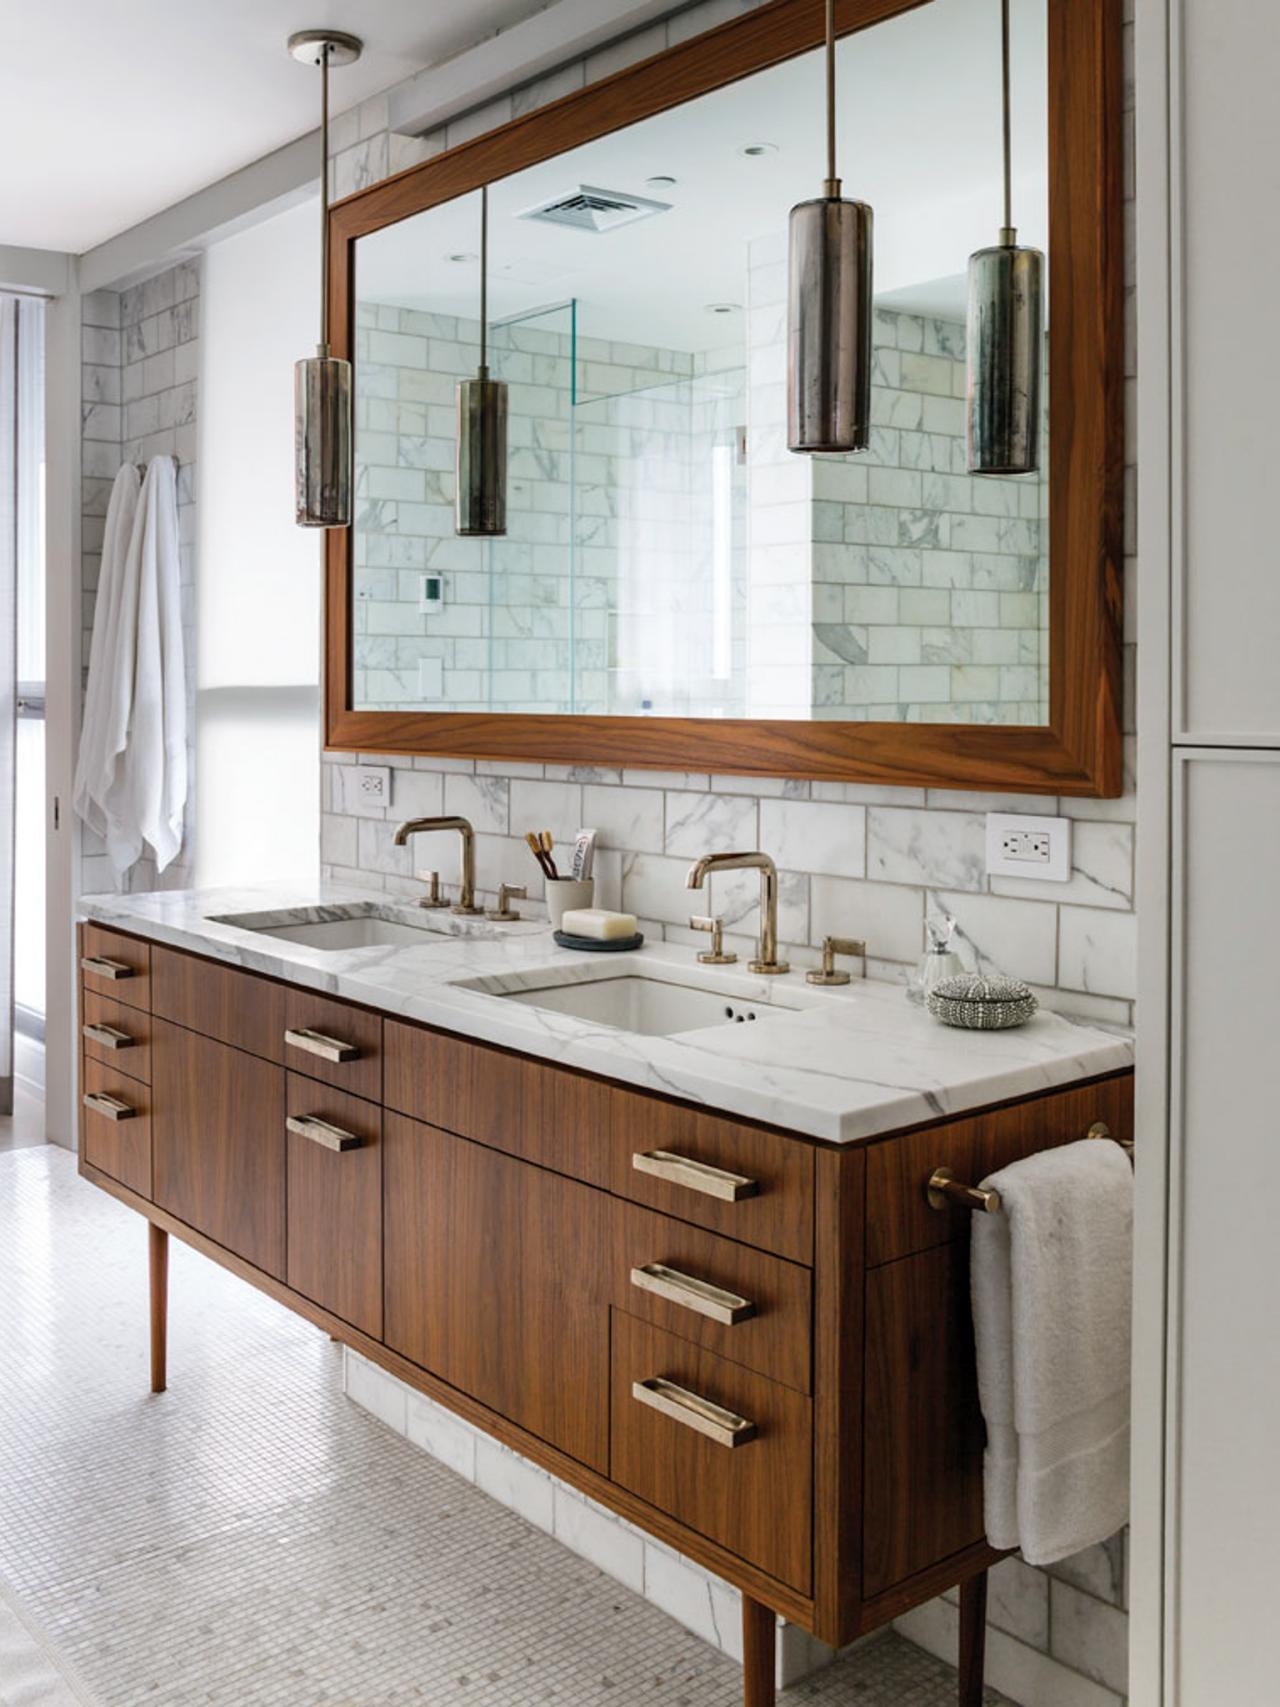 Dreamy Bathroom Vanities And Countertops